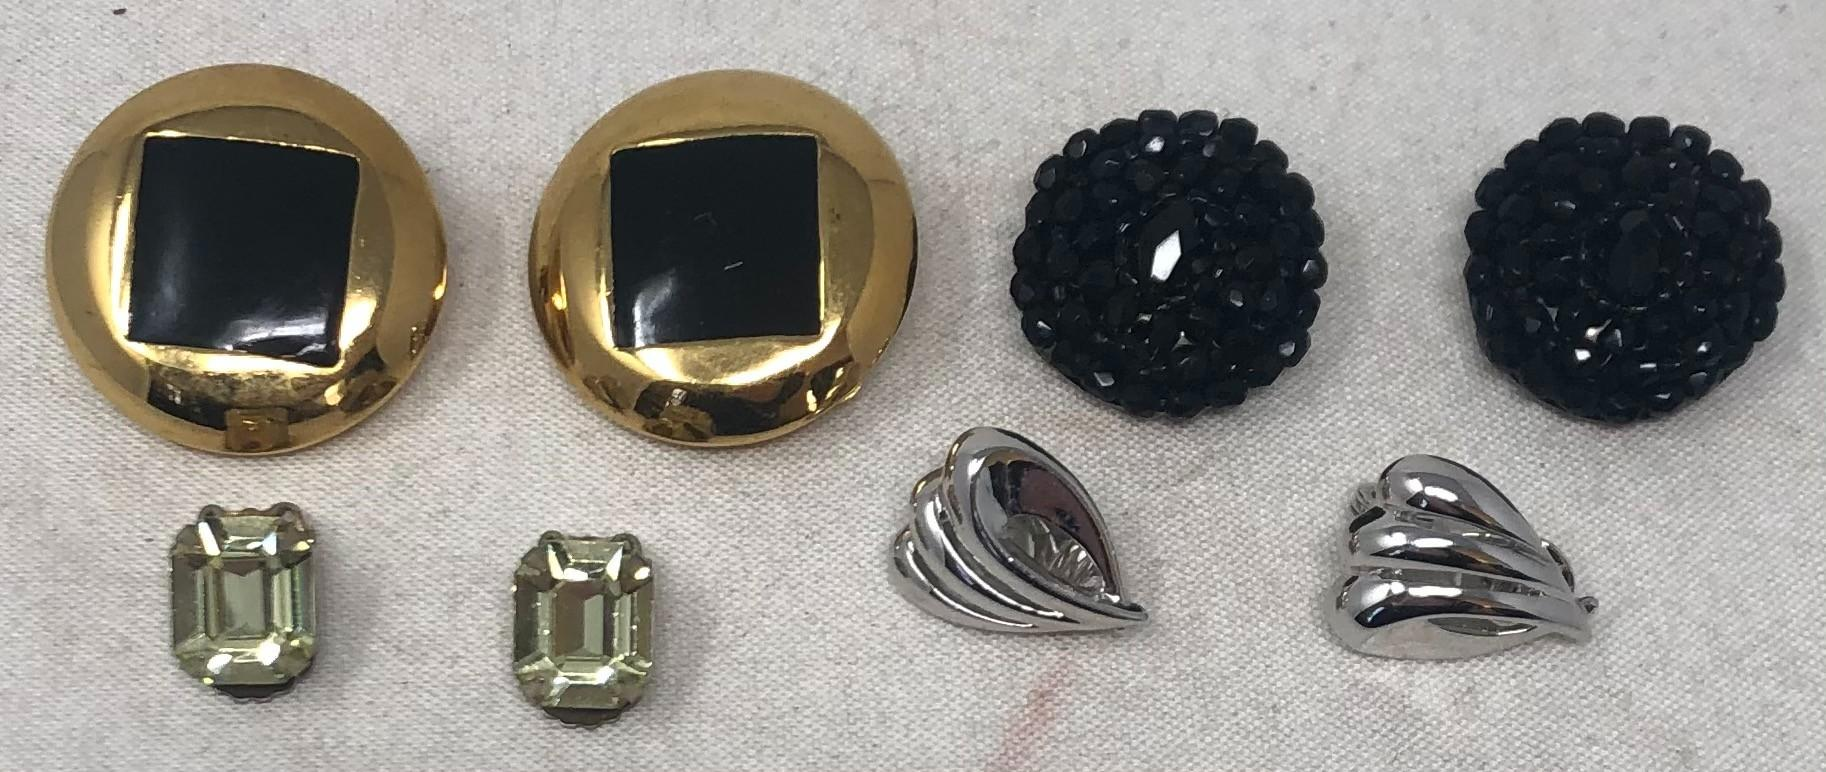 Four pair vintage costume earrings: St. John 1980's gold tone and black enamel large round button style clip earrings; Liz Claiborne jet button clip on earrings; Monet silver tone wing shape clip-on earrings; Vintage ...